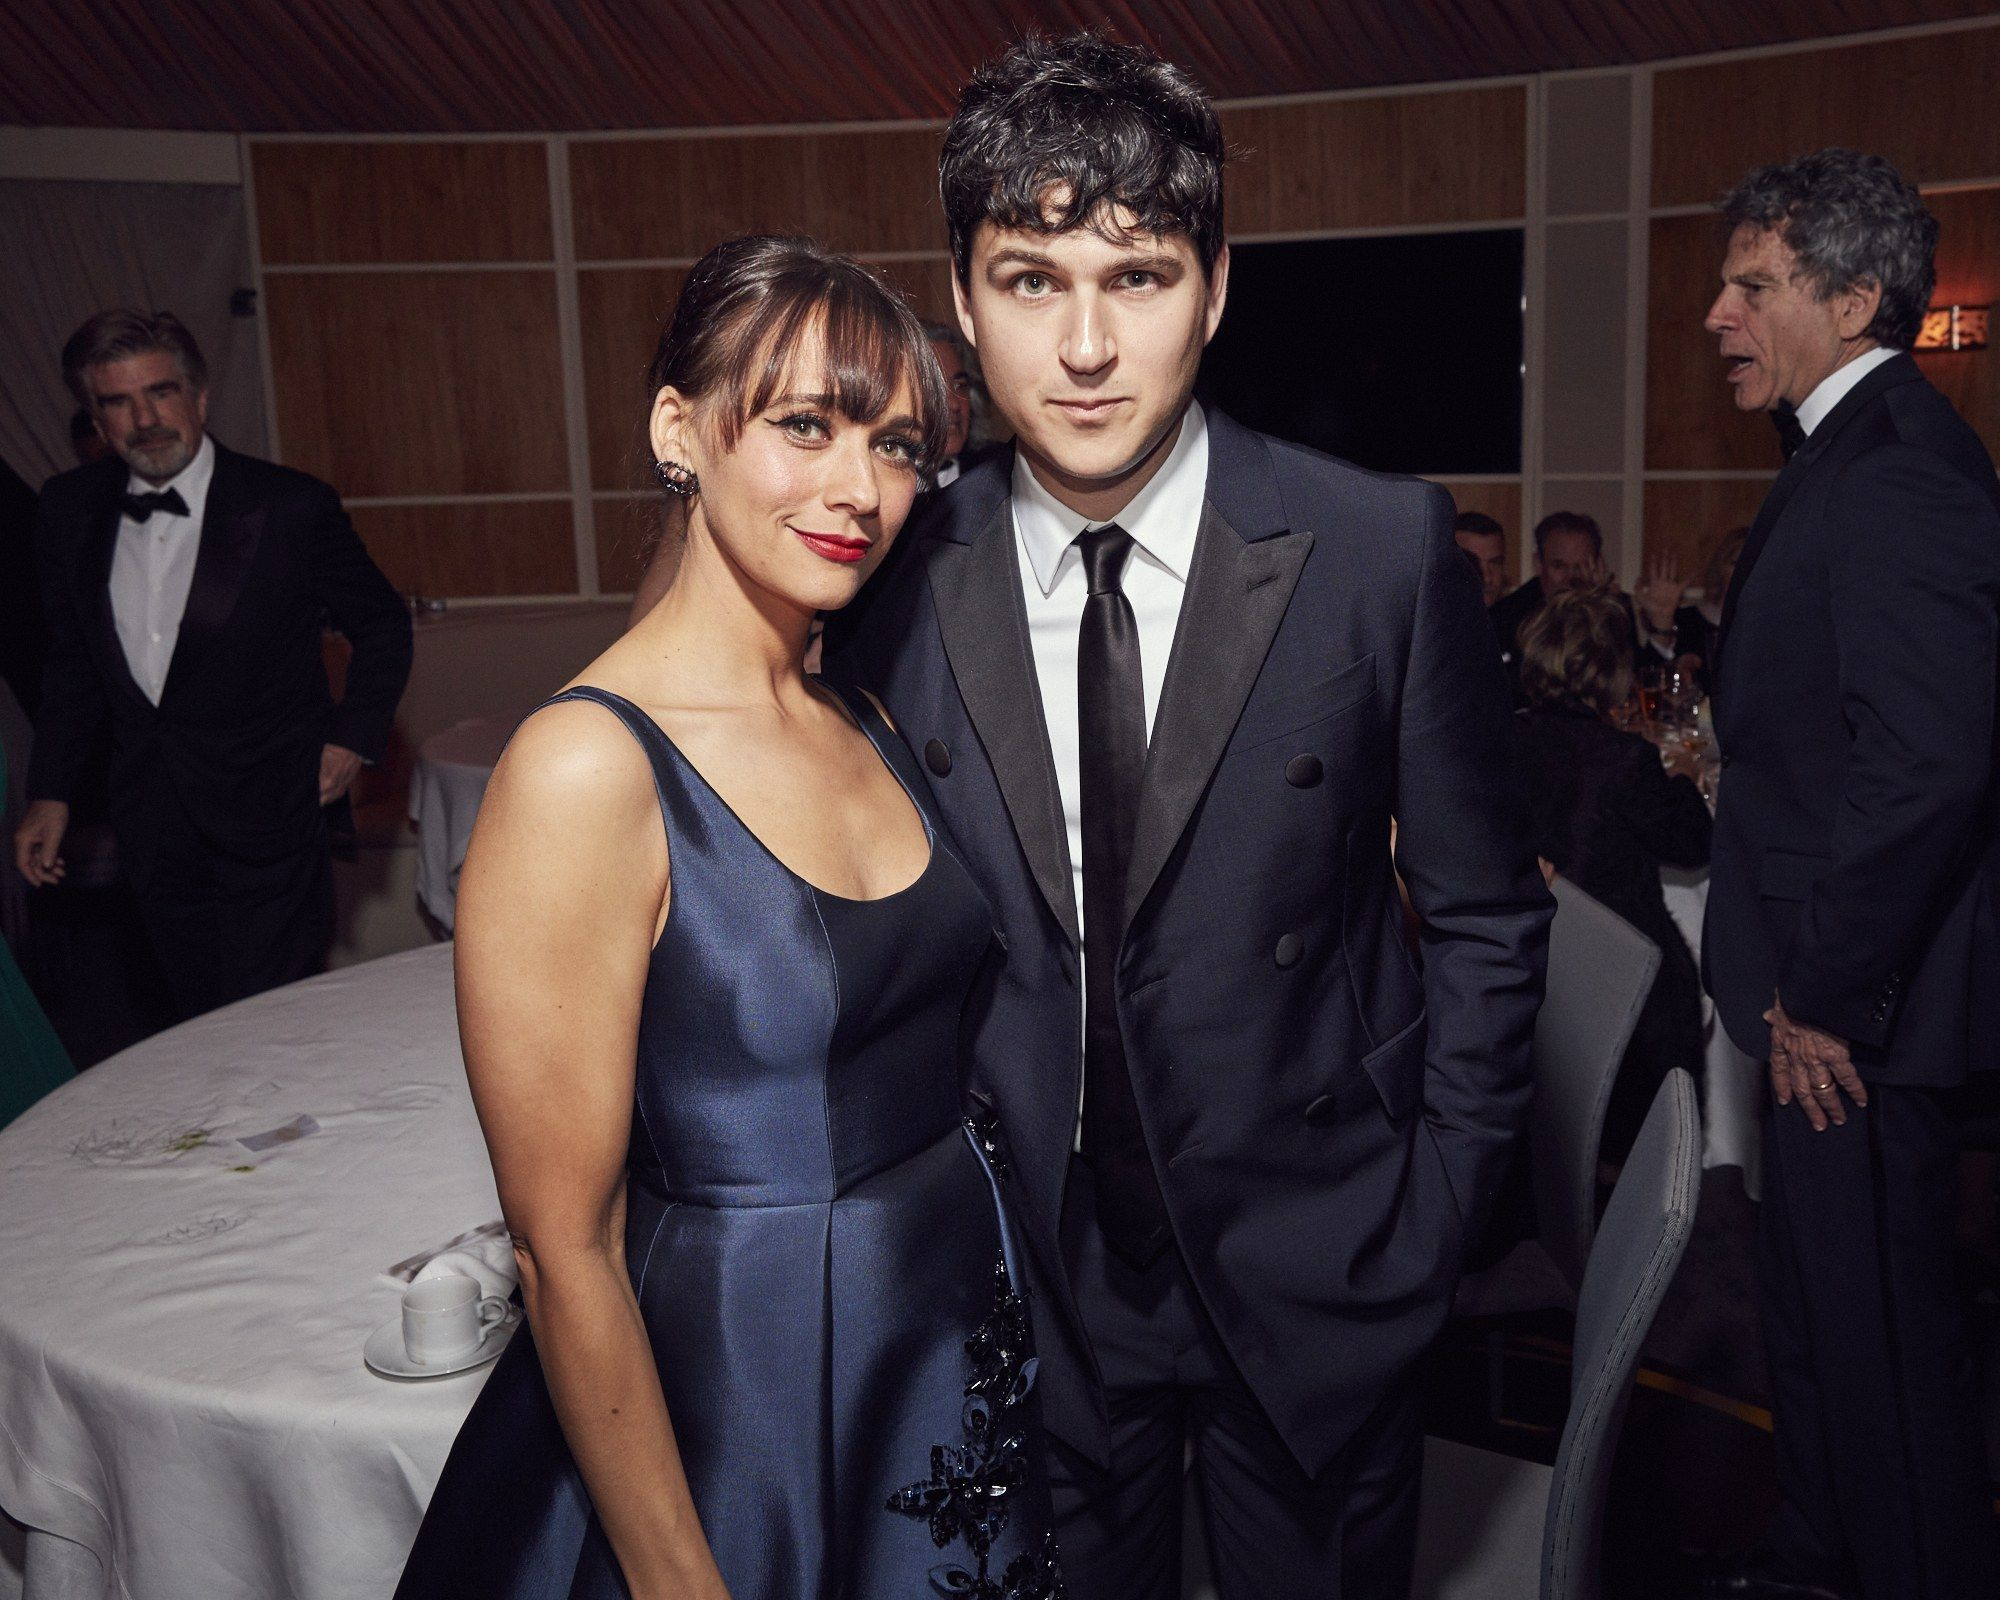 Boyfriend and girlfriend: Rashida Jones and Ezra Koenig